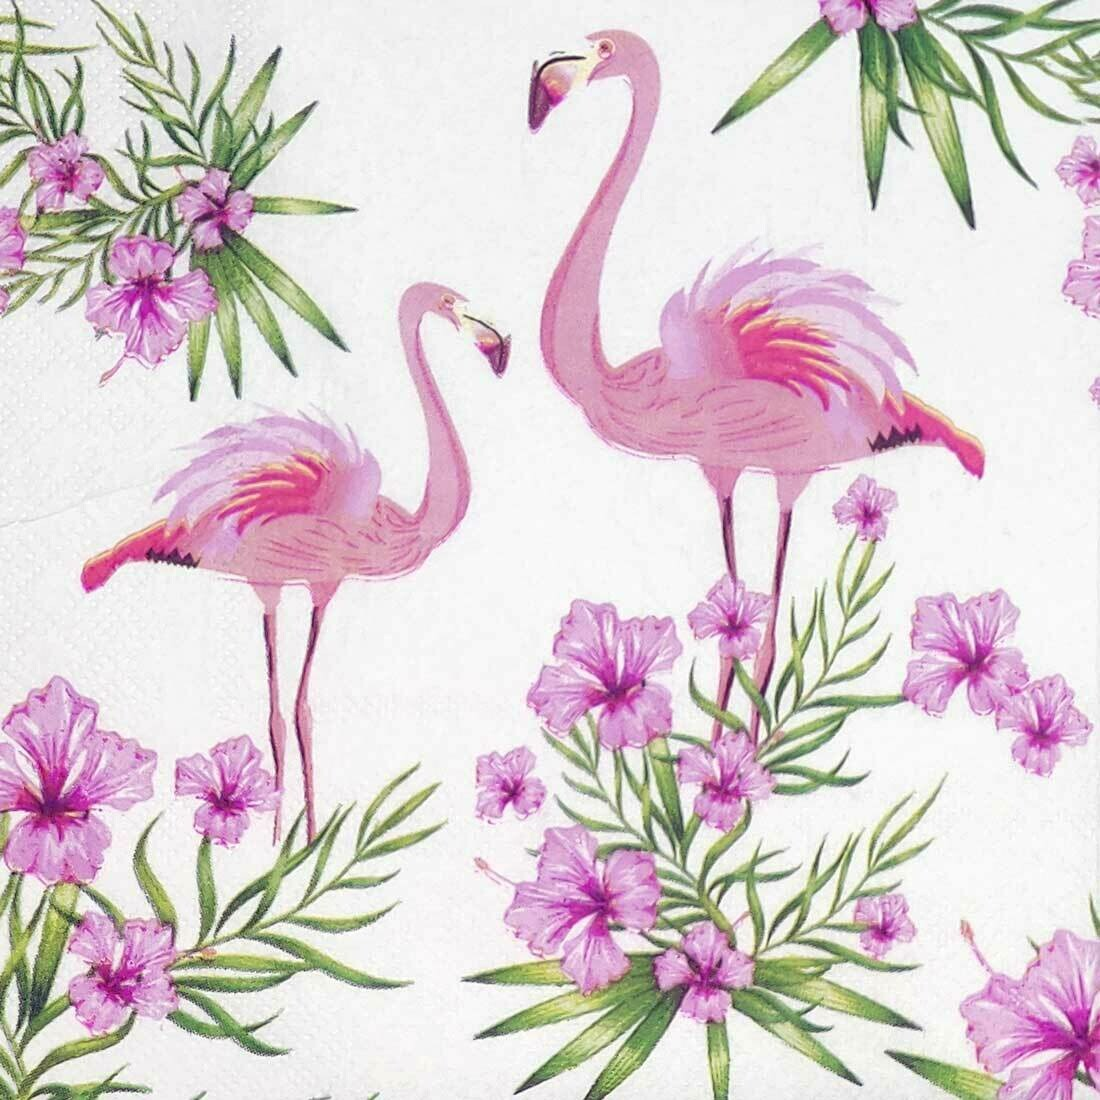 Decoupage Paper Napkins - Flamingo (1 Sheet)